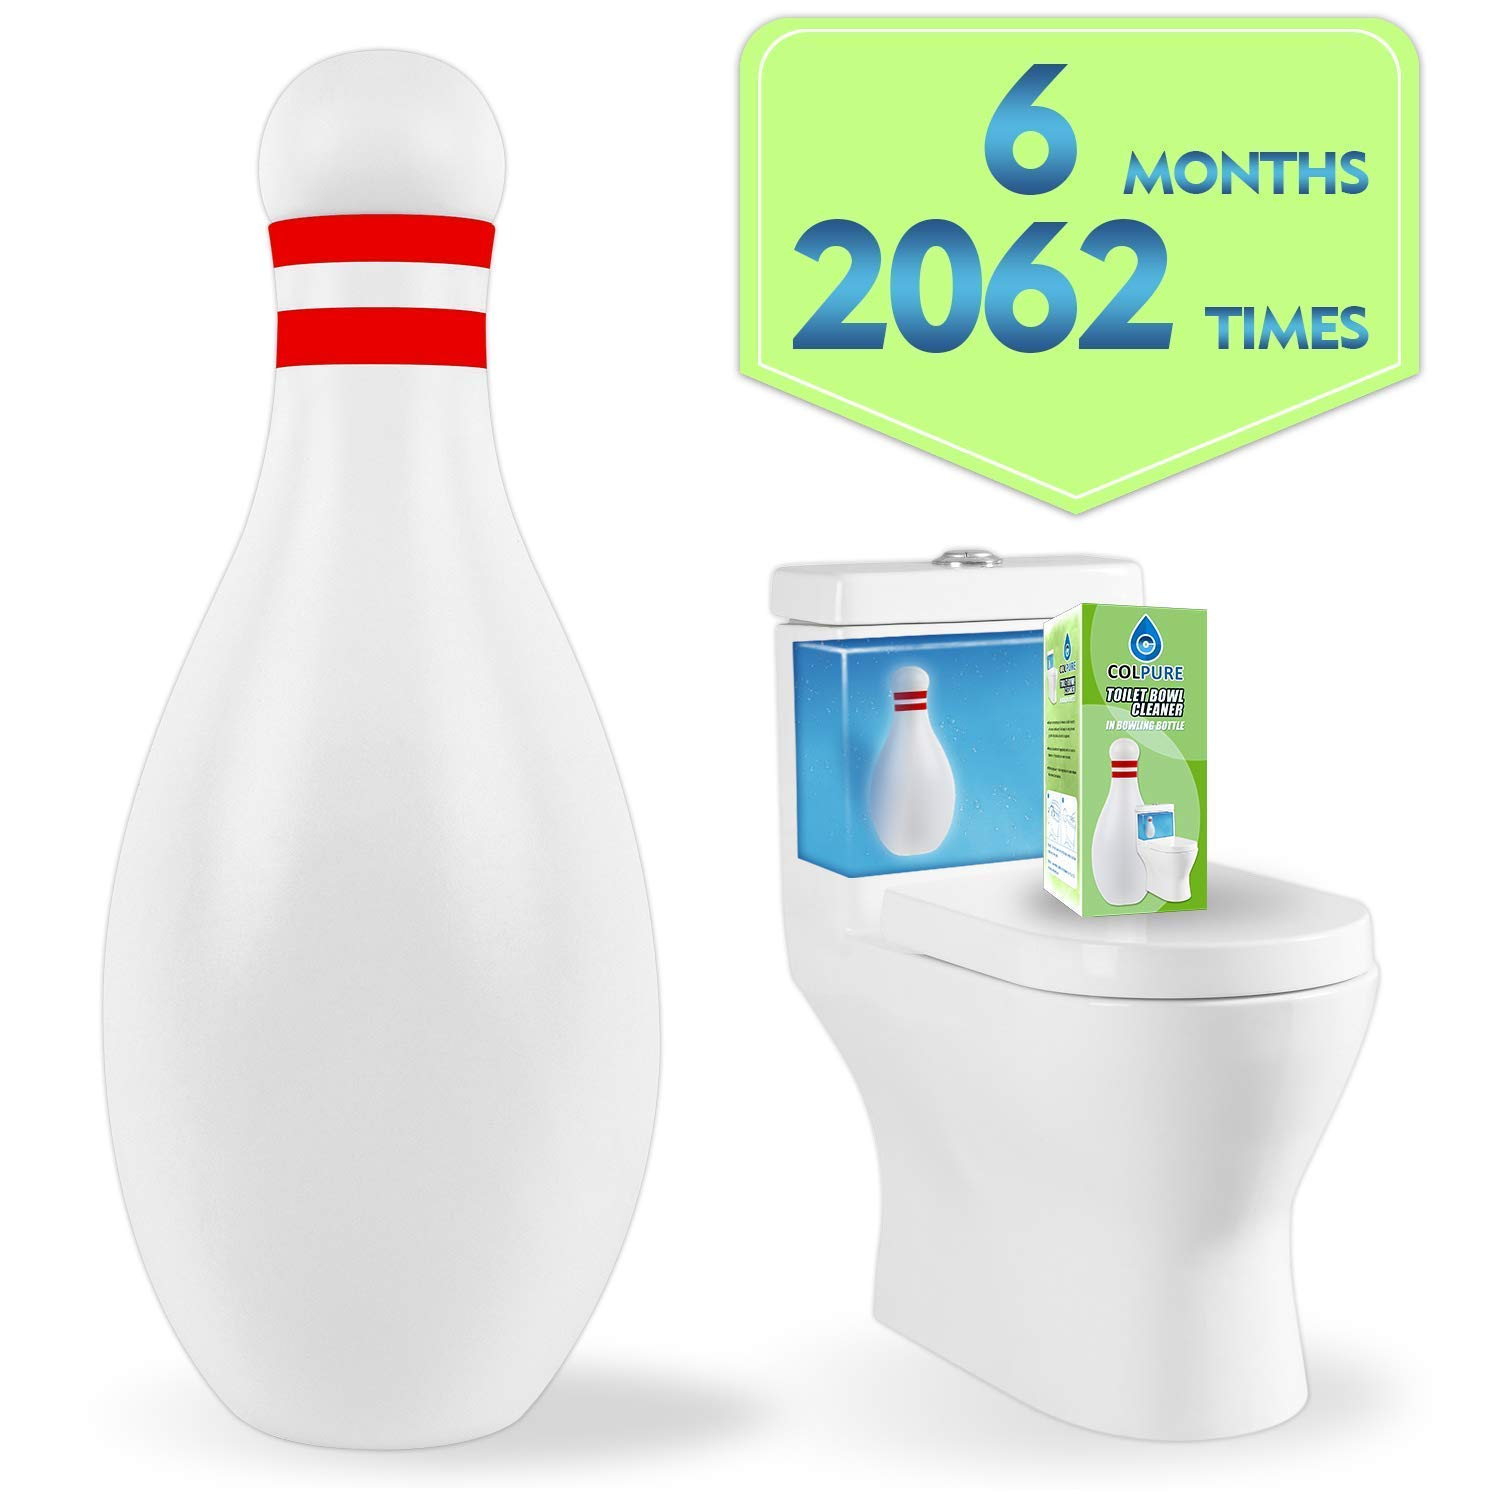 Colpure Toilet Bowl Cleaner, Automatic Bathroom and Tank Cleaning System Toilet Cleaner, Toilet Bowl Cleaner Tablets of Lasts 6 Months or has About 2,000 Flushes -1 Pack